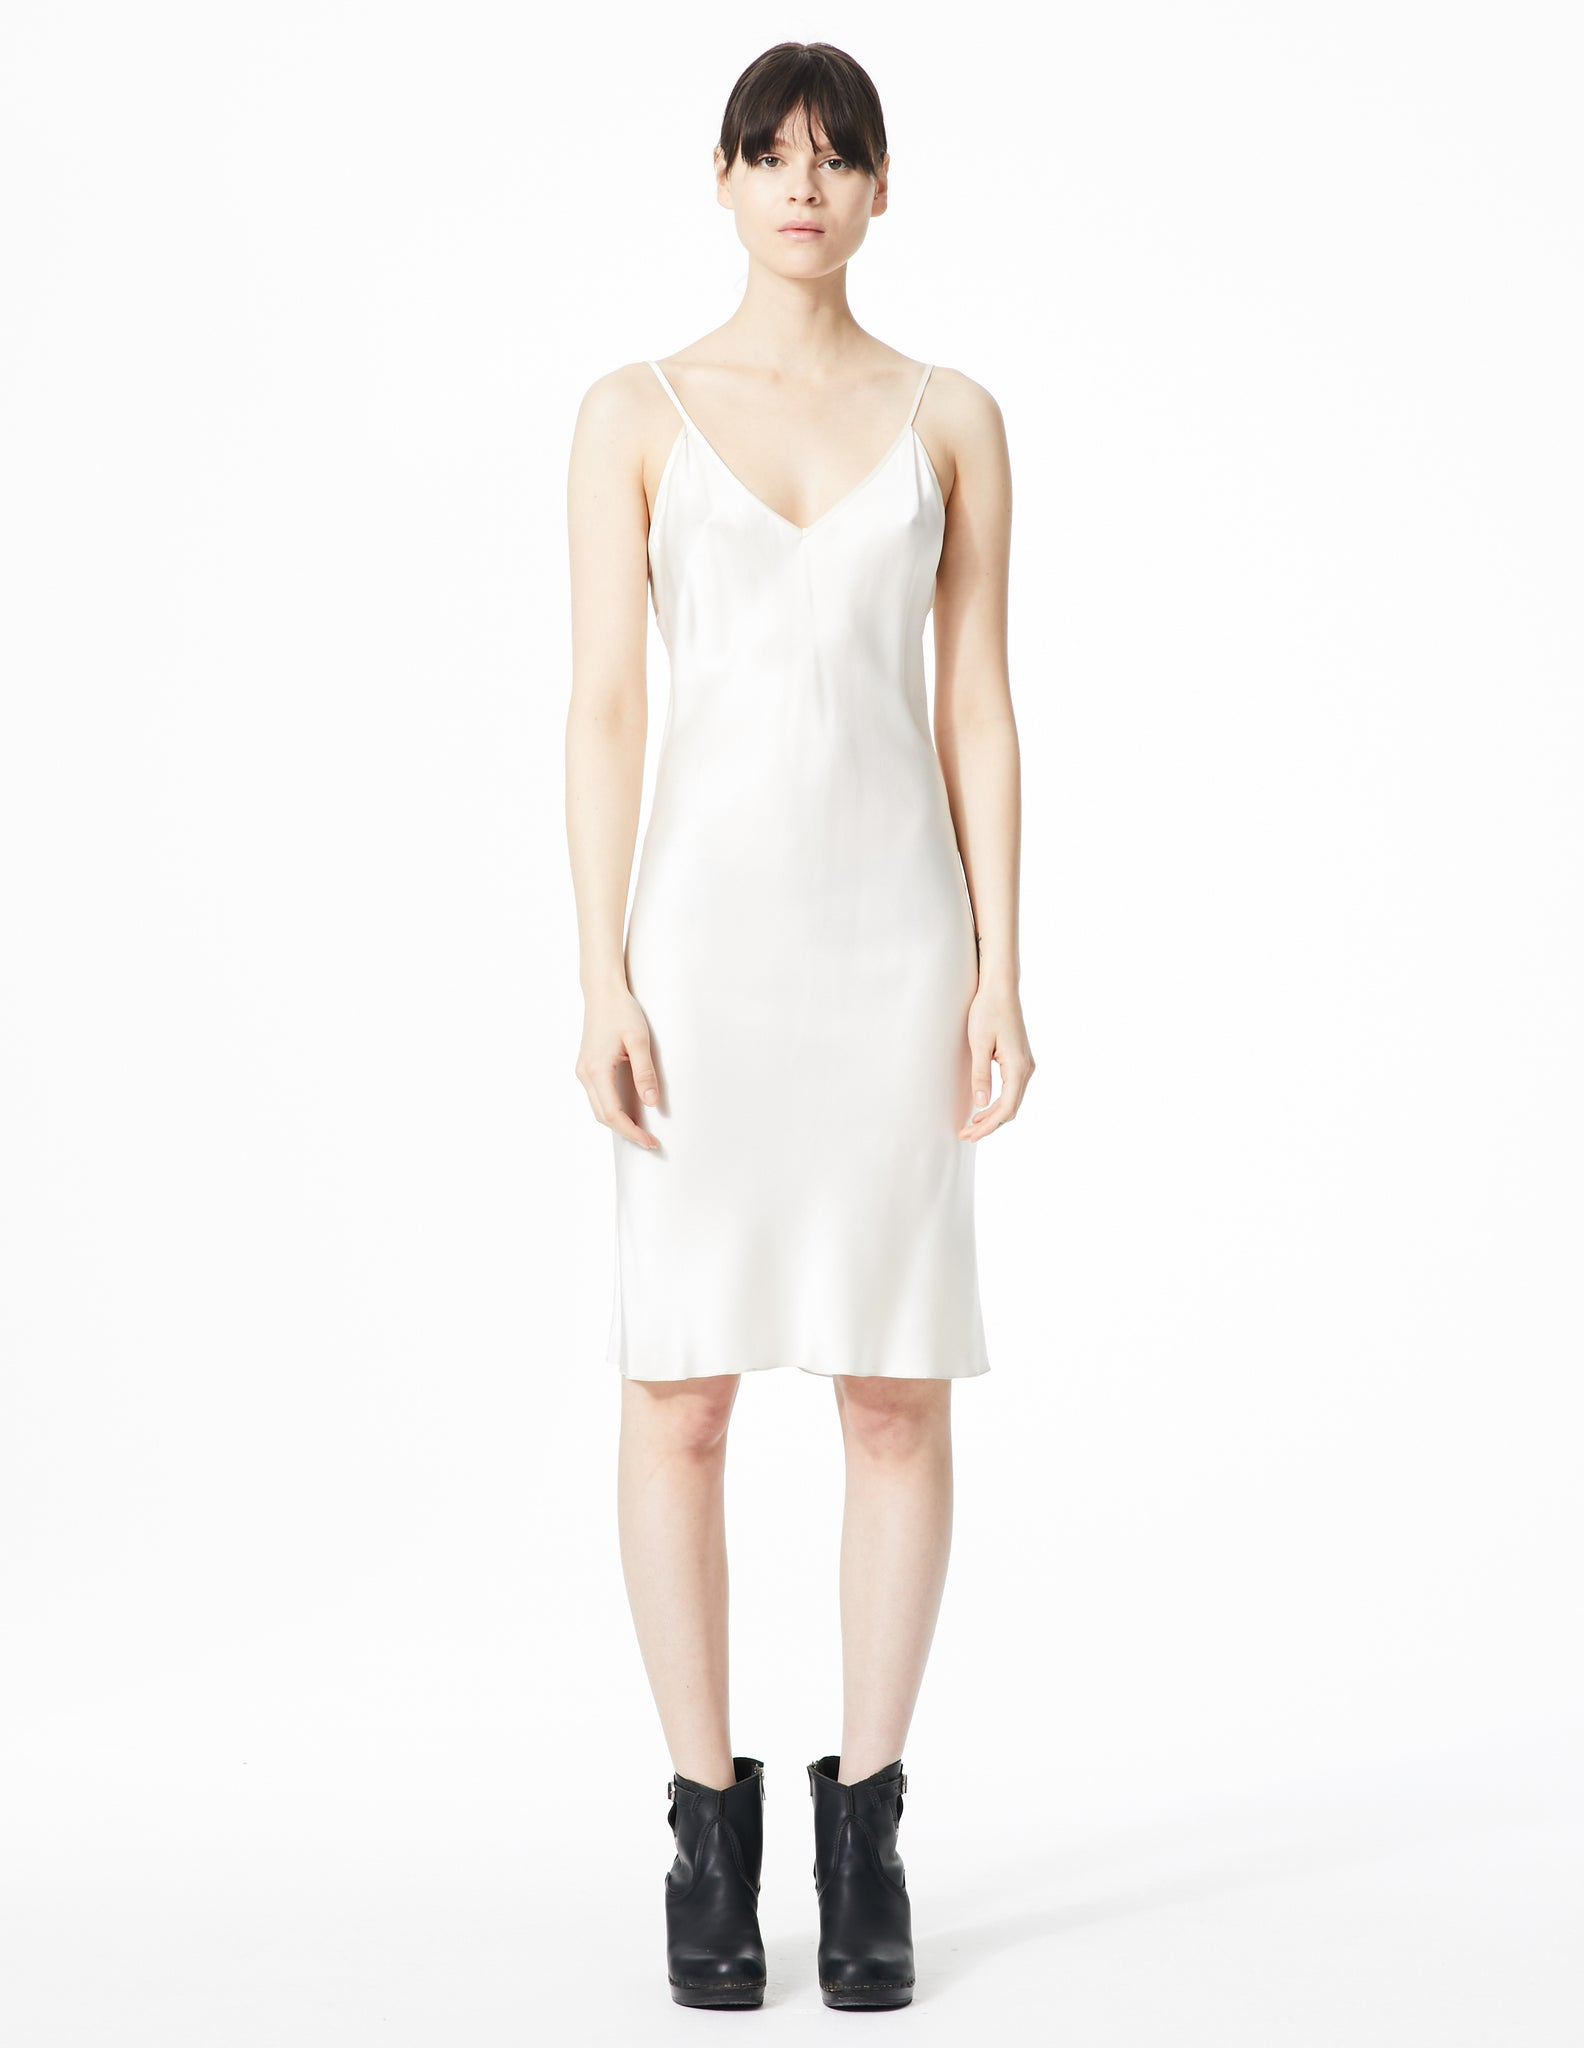 morgane le fay knee-length, v-neck dress slip with thin straps.